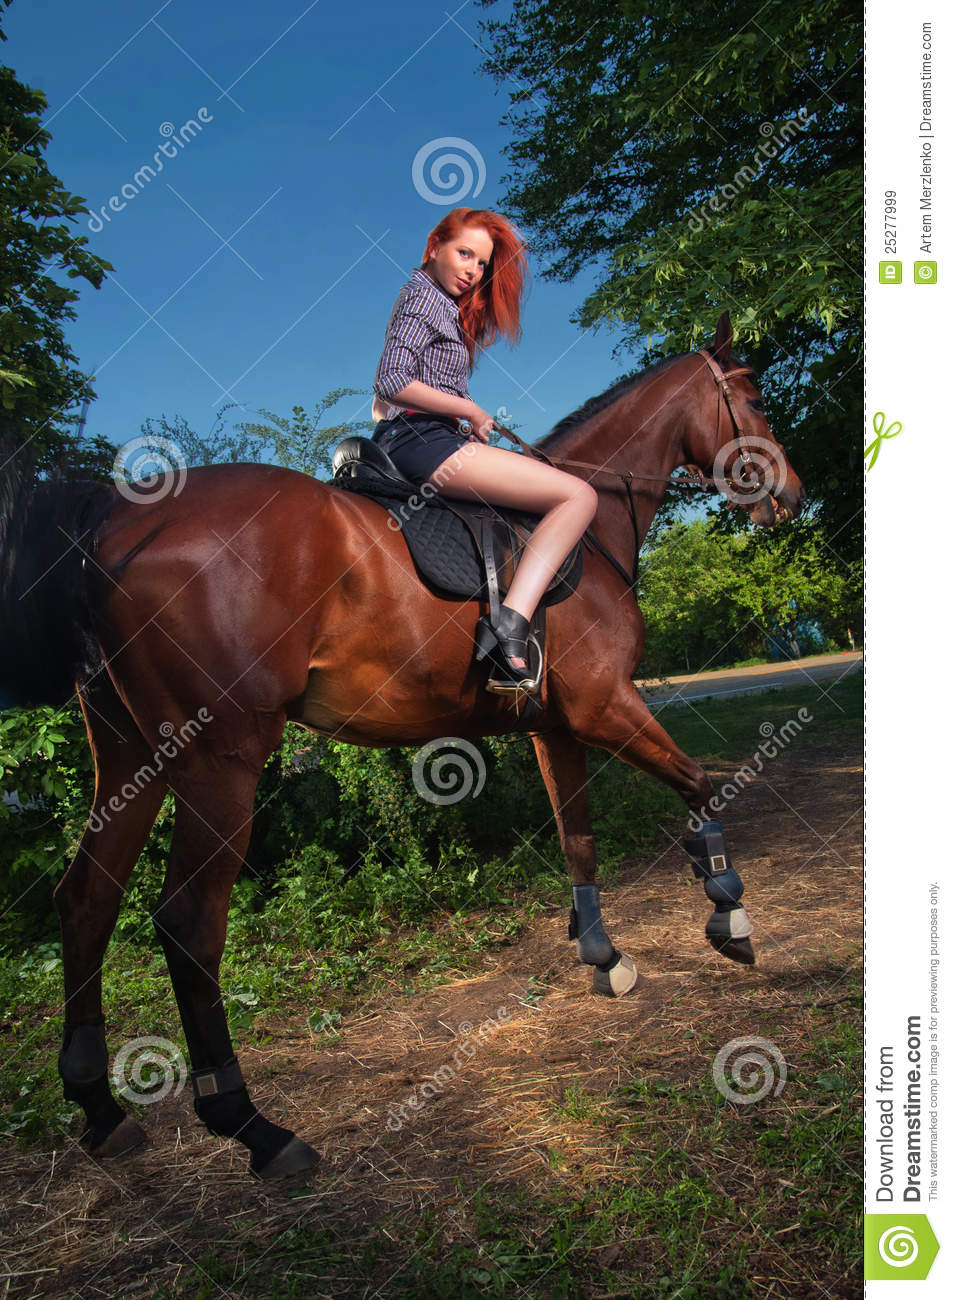 woman with red hair sitting on a horse royalty free stock